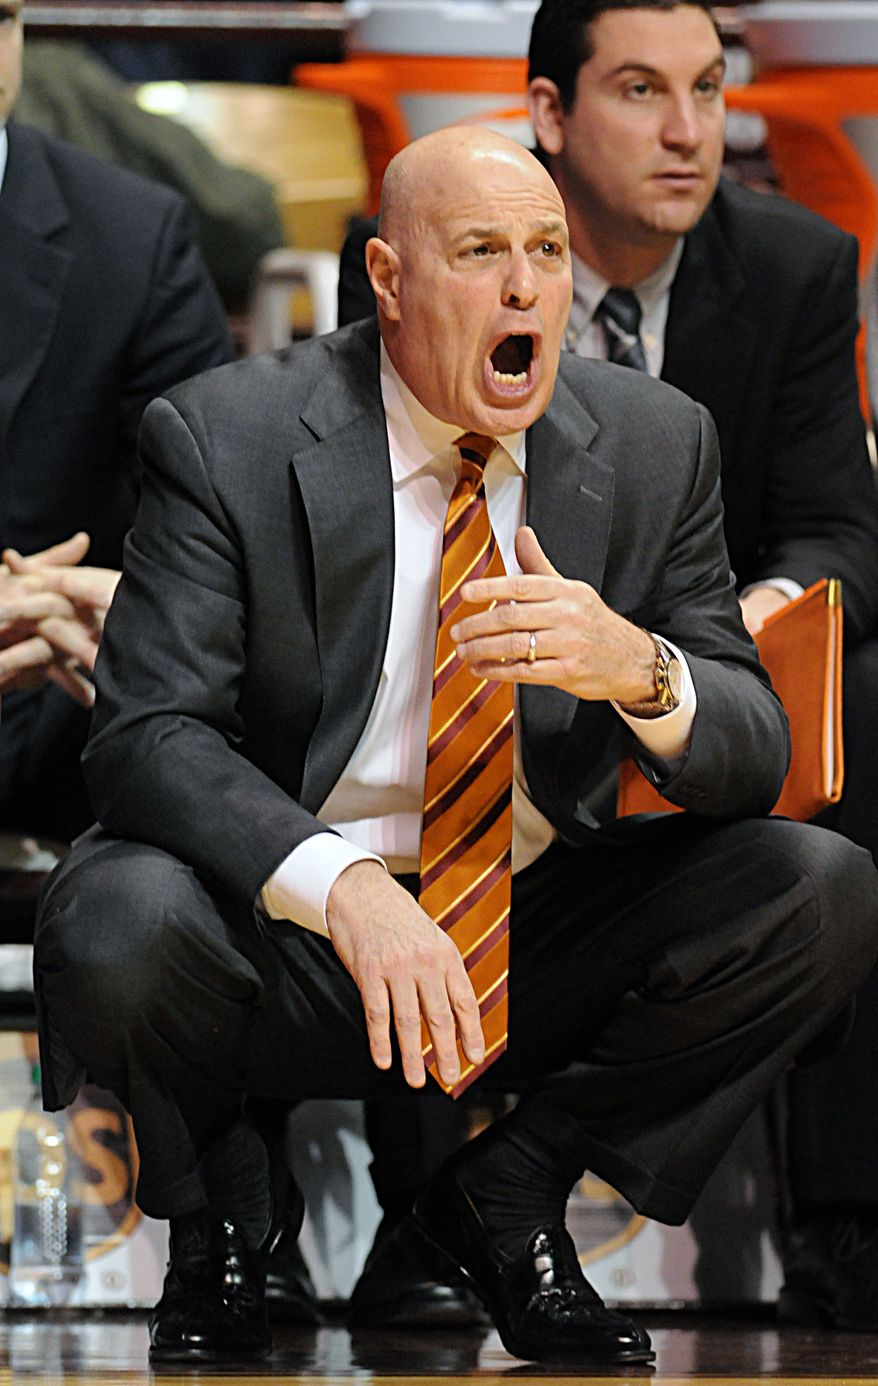 Virginia Tech coach Seth Greenberg yells to his players during the first half against Virginia on Tuesday, Feb. 21, 2012, at Cassell Coliseum in Blacksburg, Va. (AP Photo/Don Petersen)